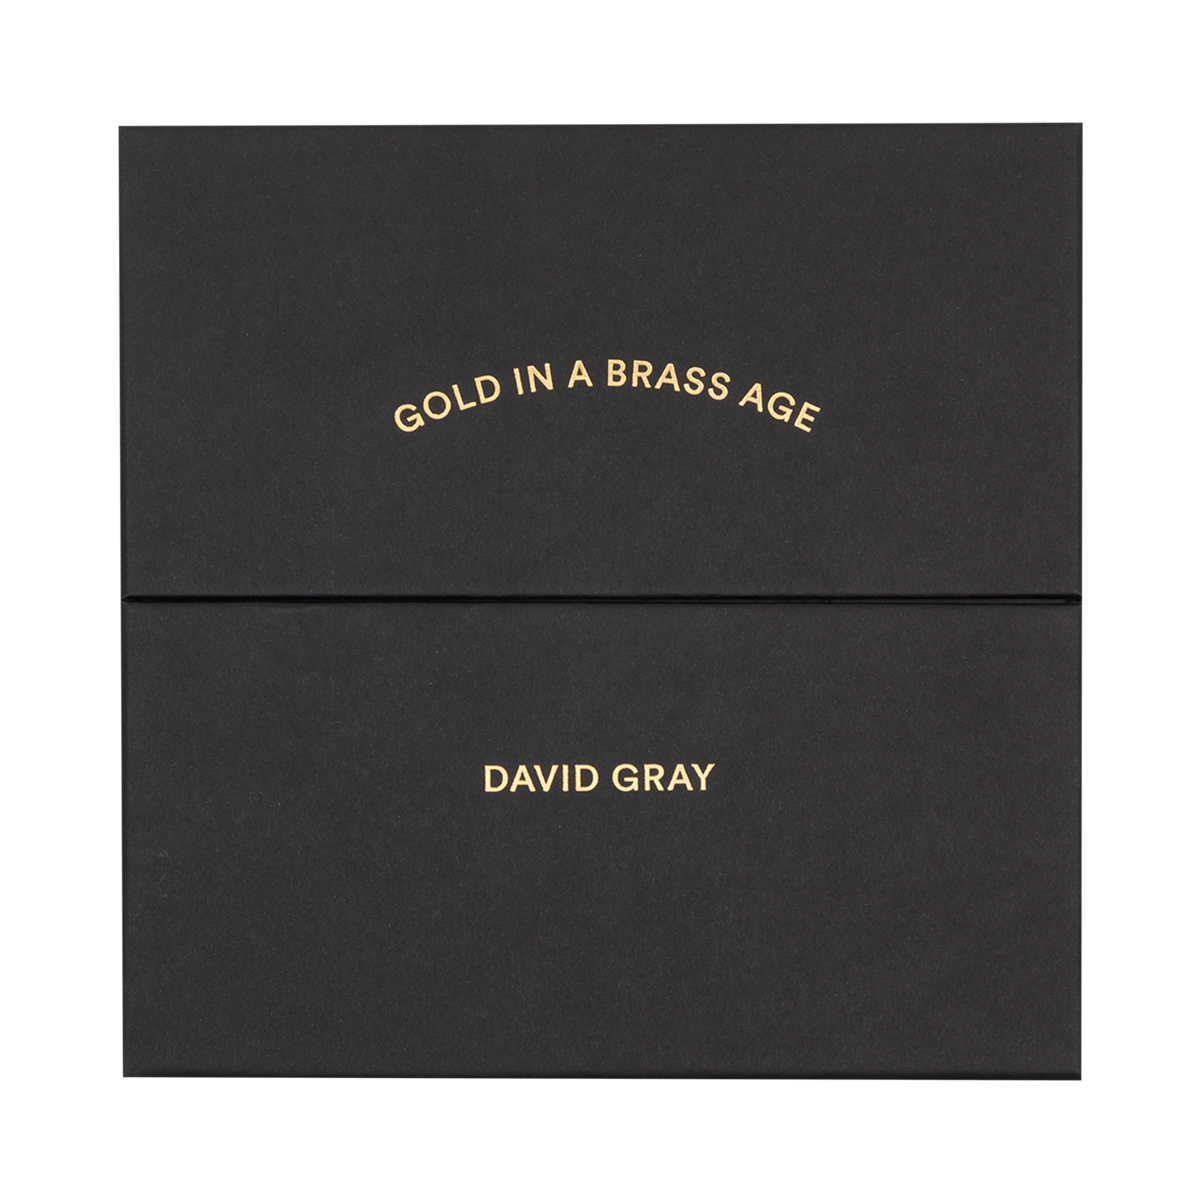 Gold in a Brass Age Deluxe Vinyl Boxset